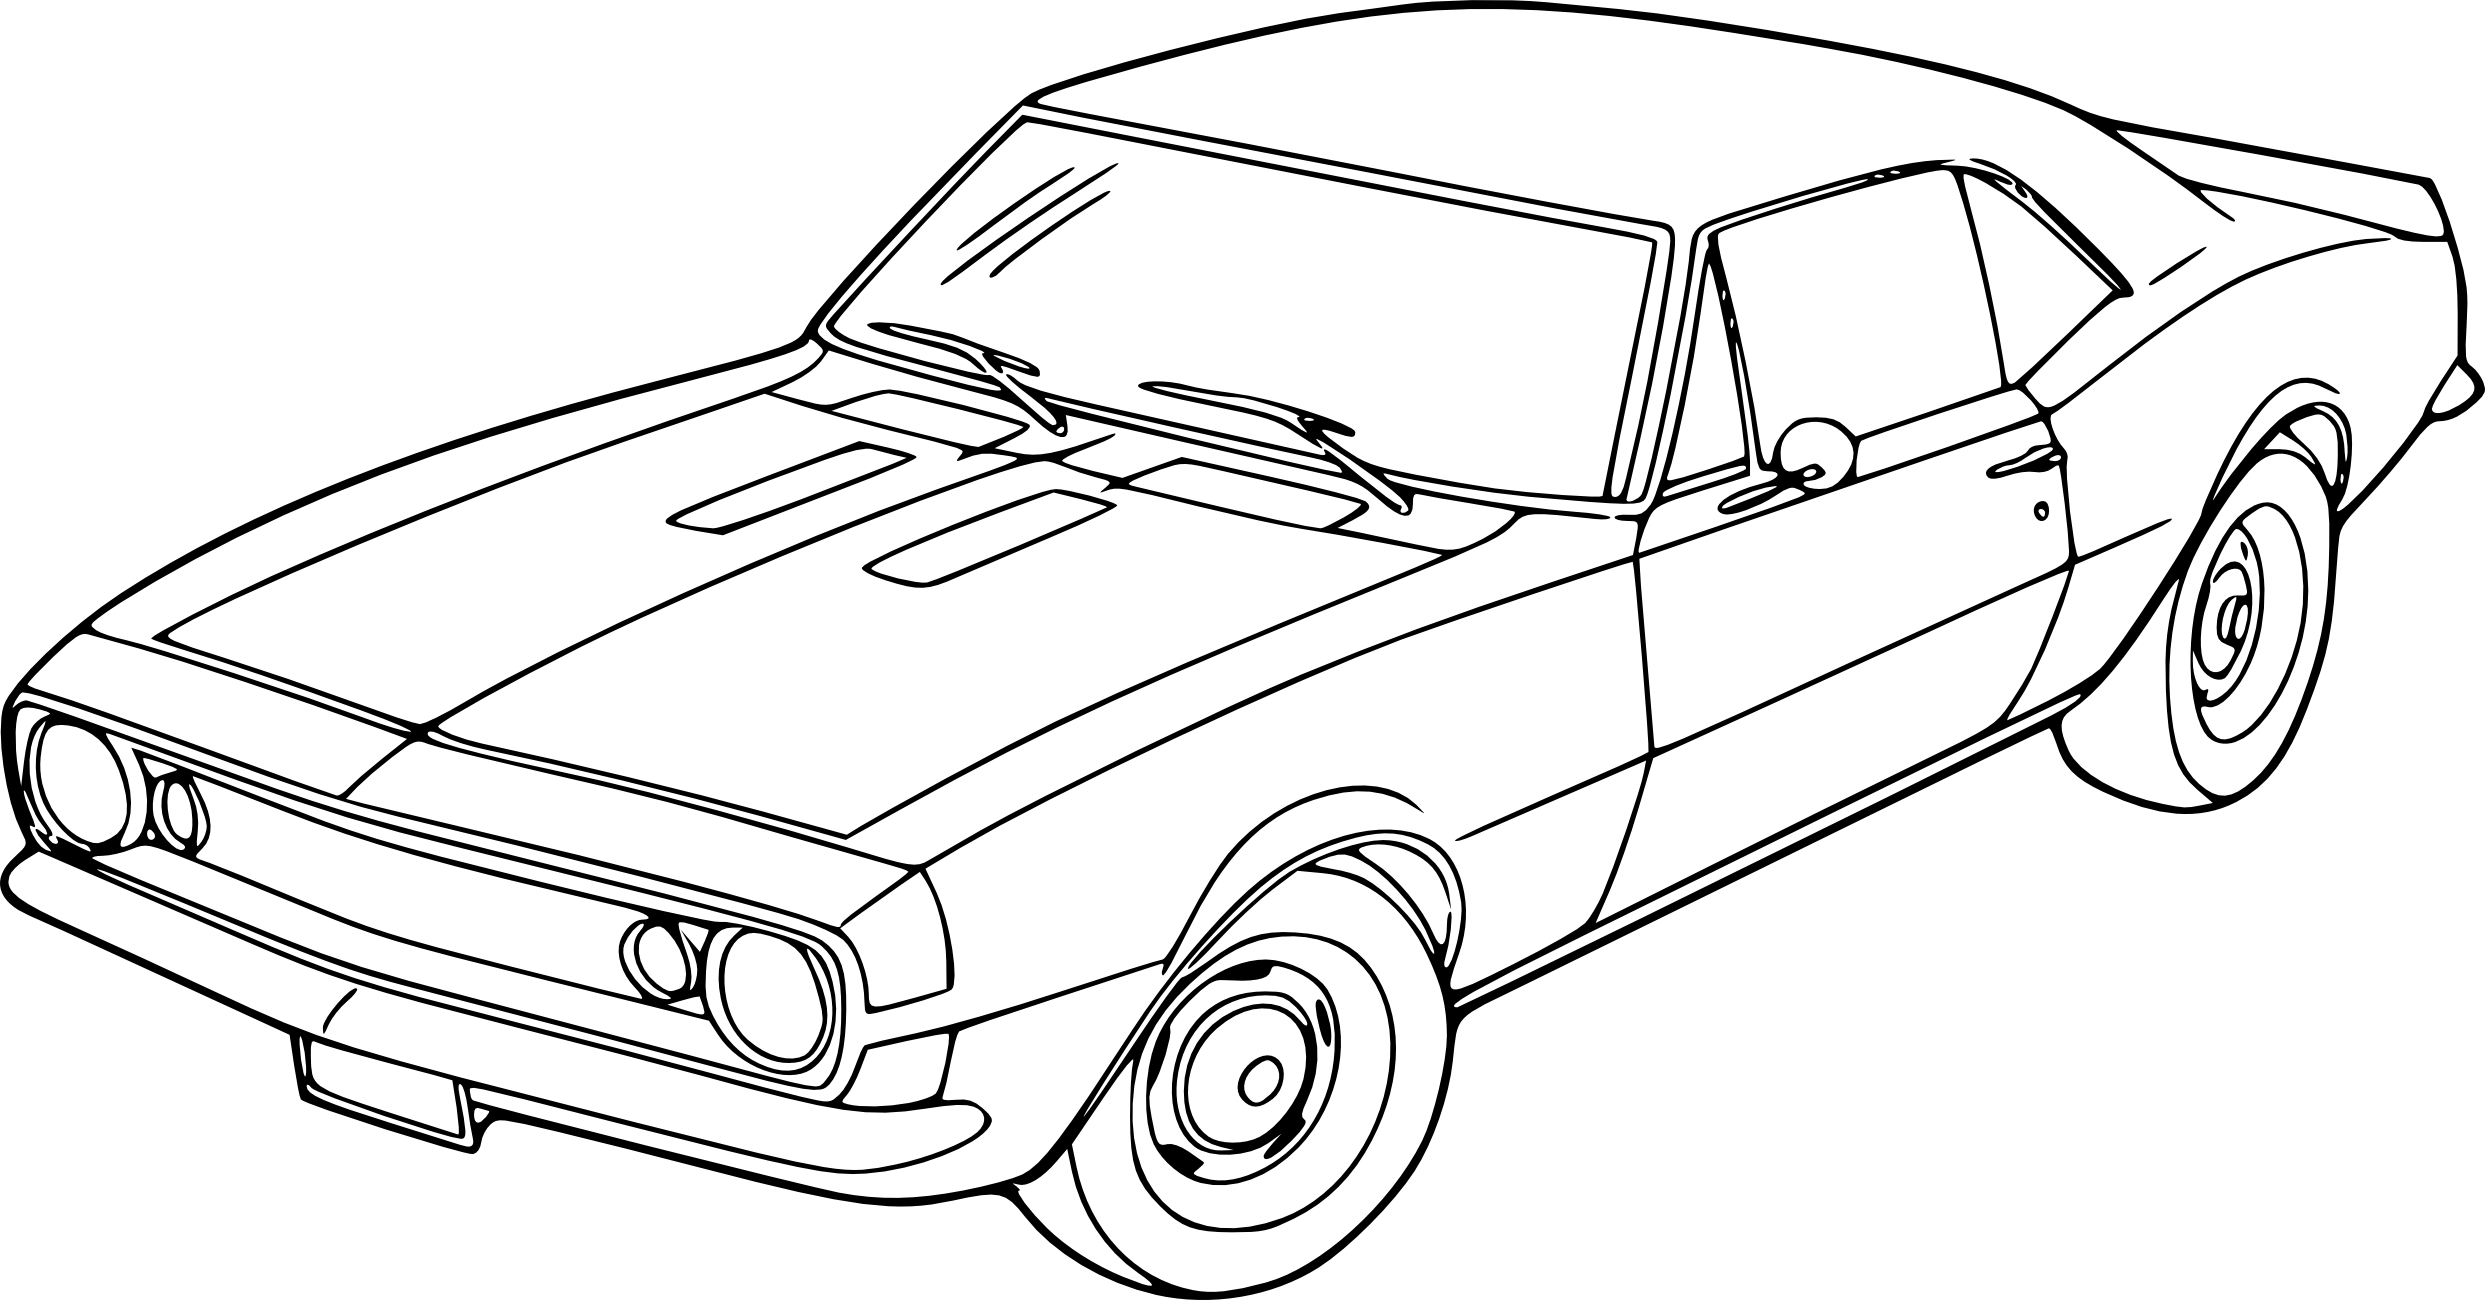 Cool Fast And Furious Coloriage 24 Avec supplémentaire Coloriage Inspiration with Fast And Furious Coloriage